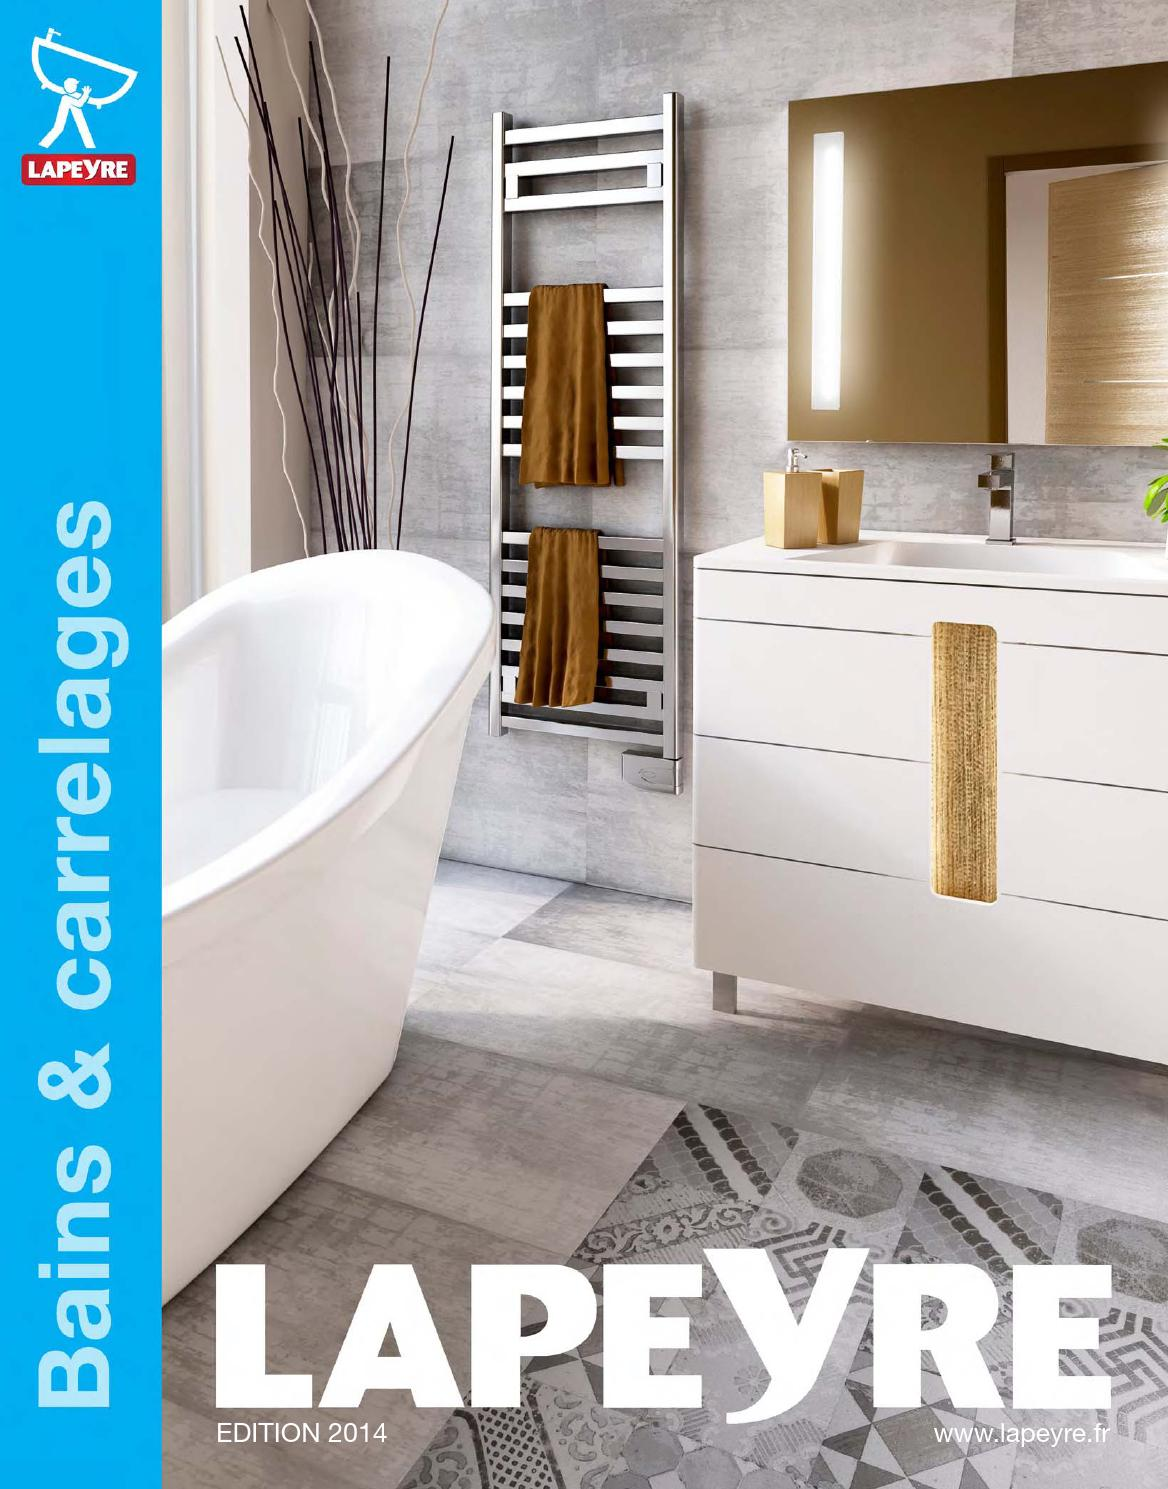 catalogue lapeyre bains carrelages 2014 by joe monroe issuu. Black Bedroom Furniture Sets. Home Design Ideas